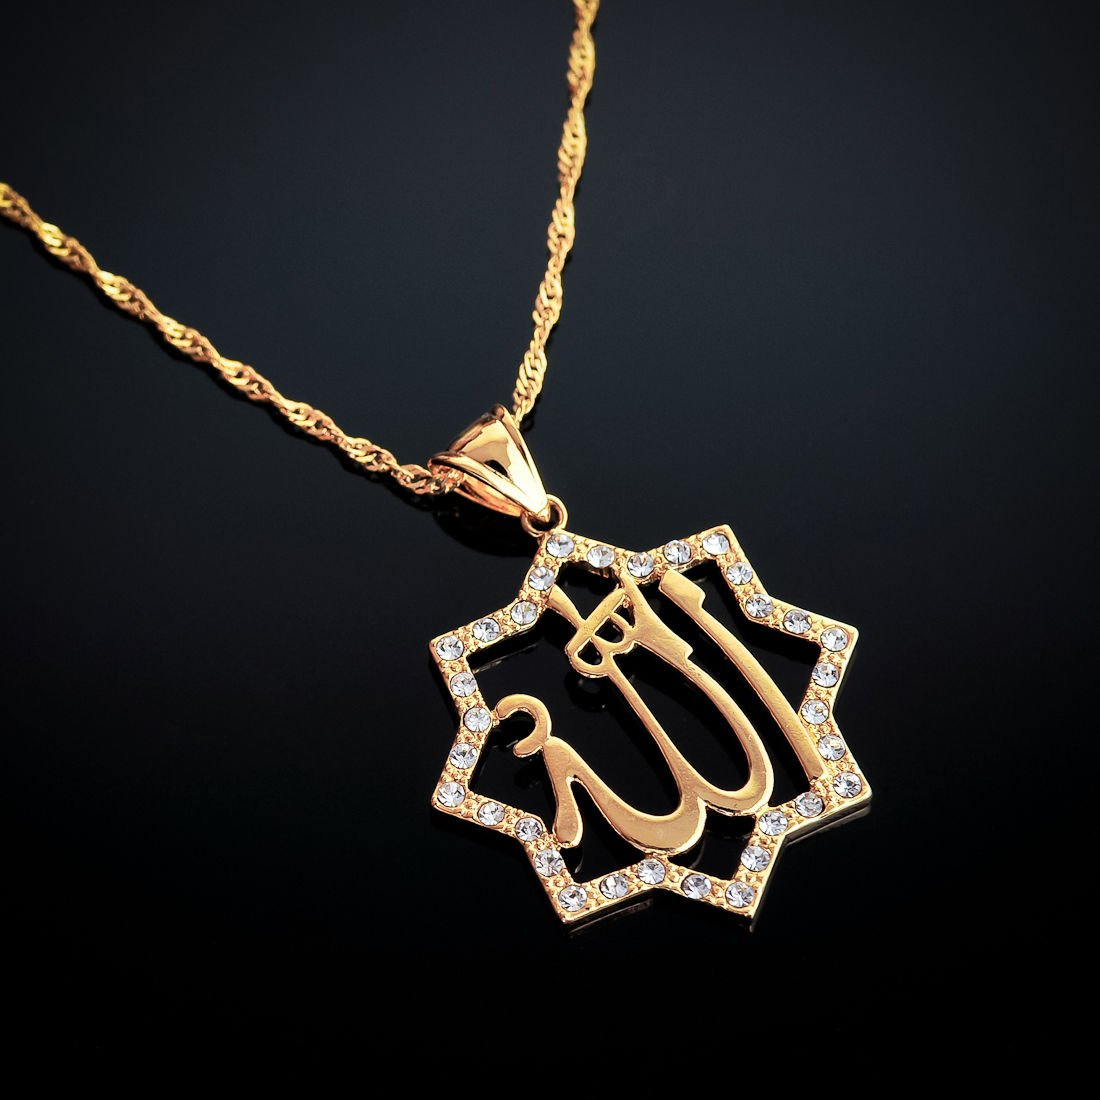 Fashion 18k gold plated Allah design pendant & necklace ! Islam Jewelry & Gift